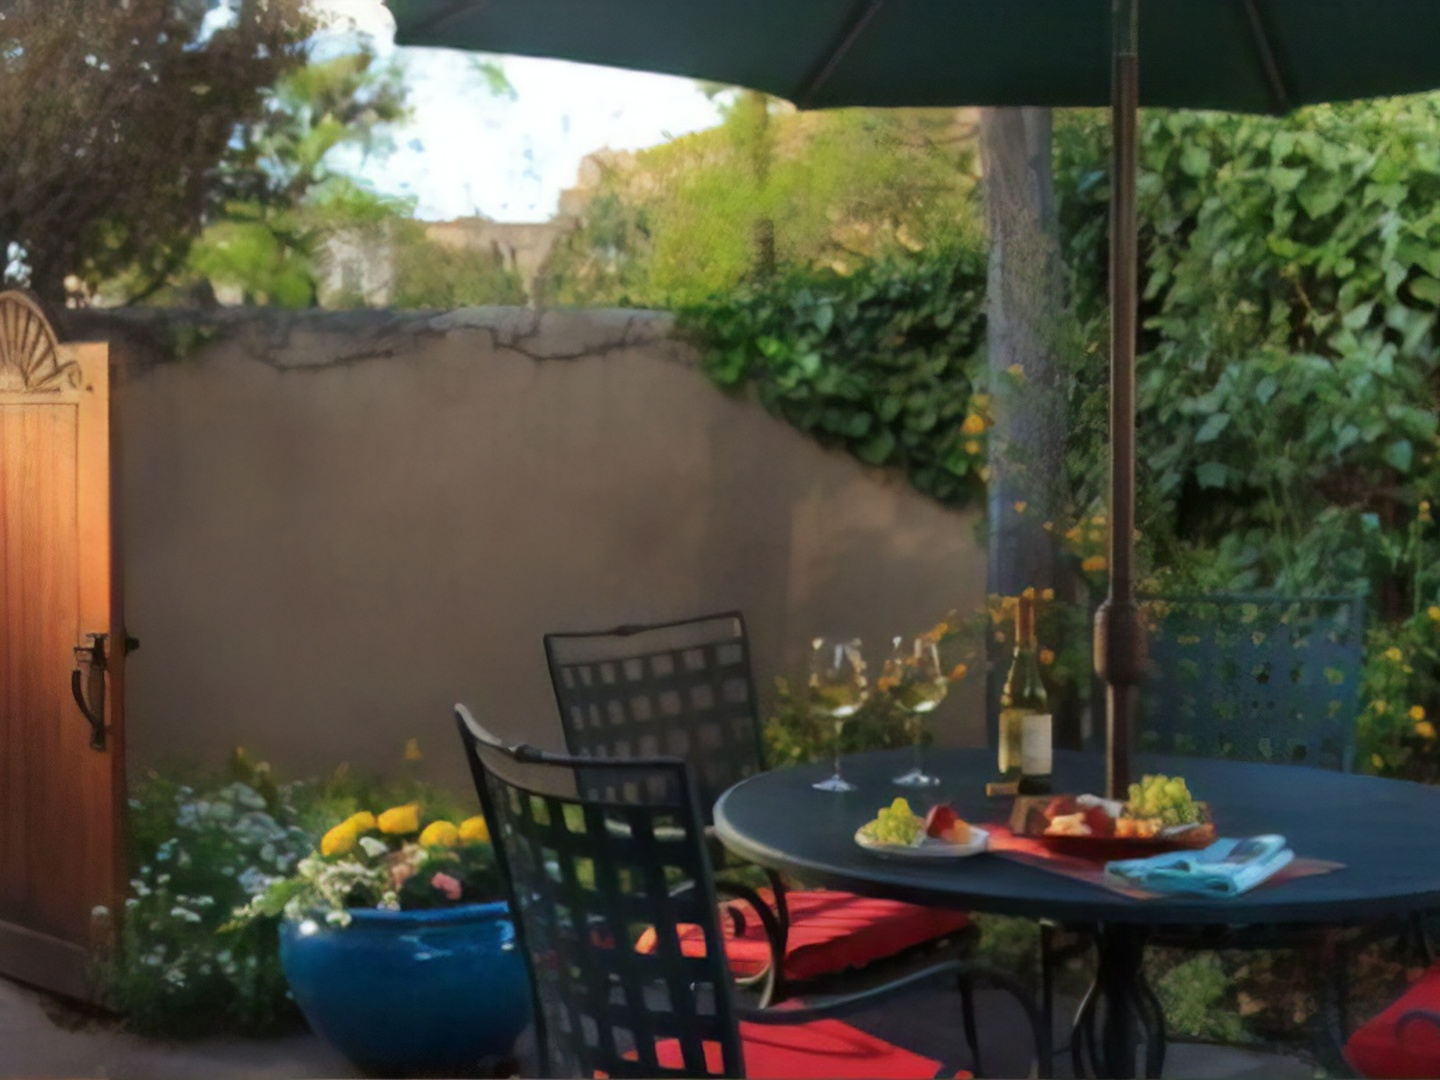 A table topped with a blue umbrella at El Farolito Bed & Breakfast.